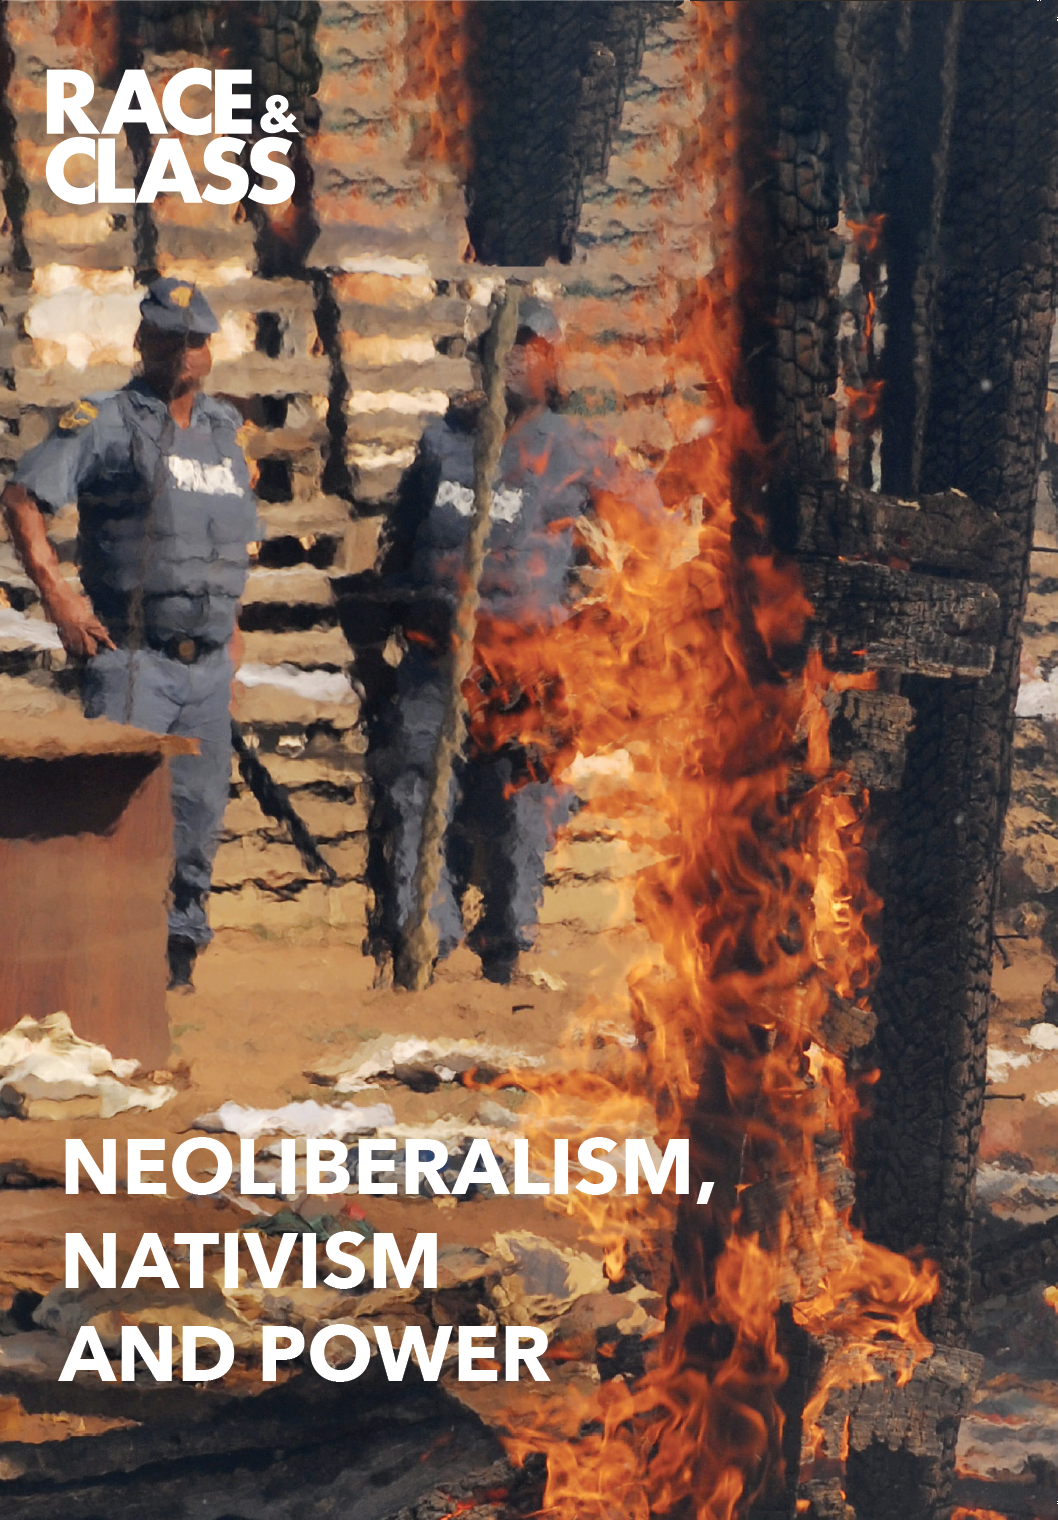 A photo of a fire in Gauteng, South Africa, where residents set foreigners' shacks on fire in a xenophobic attack in 2008.